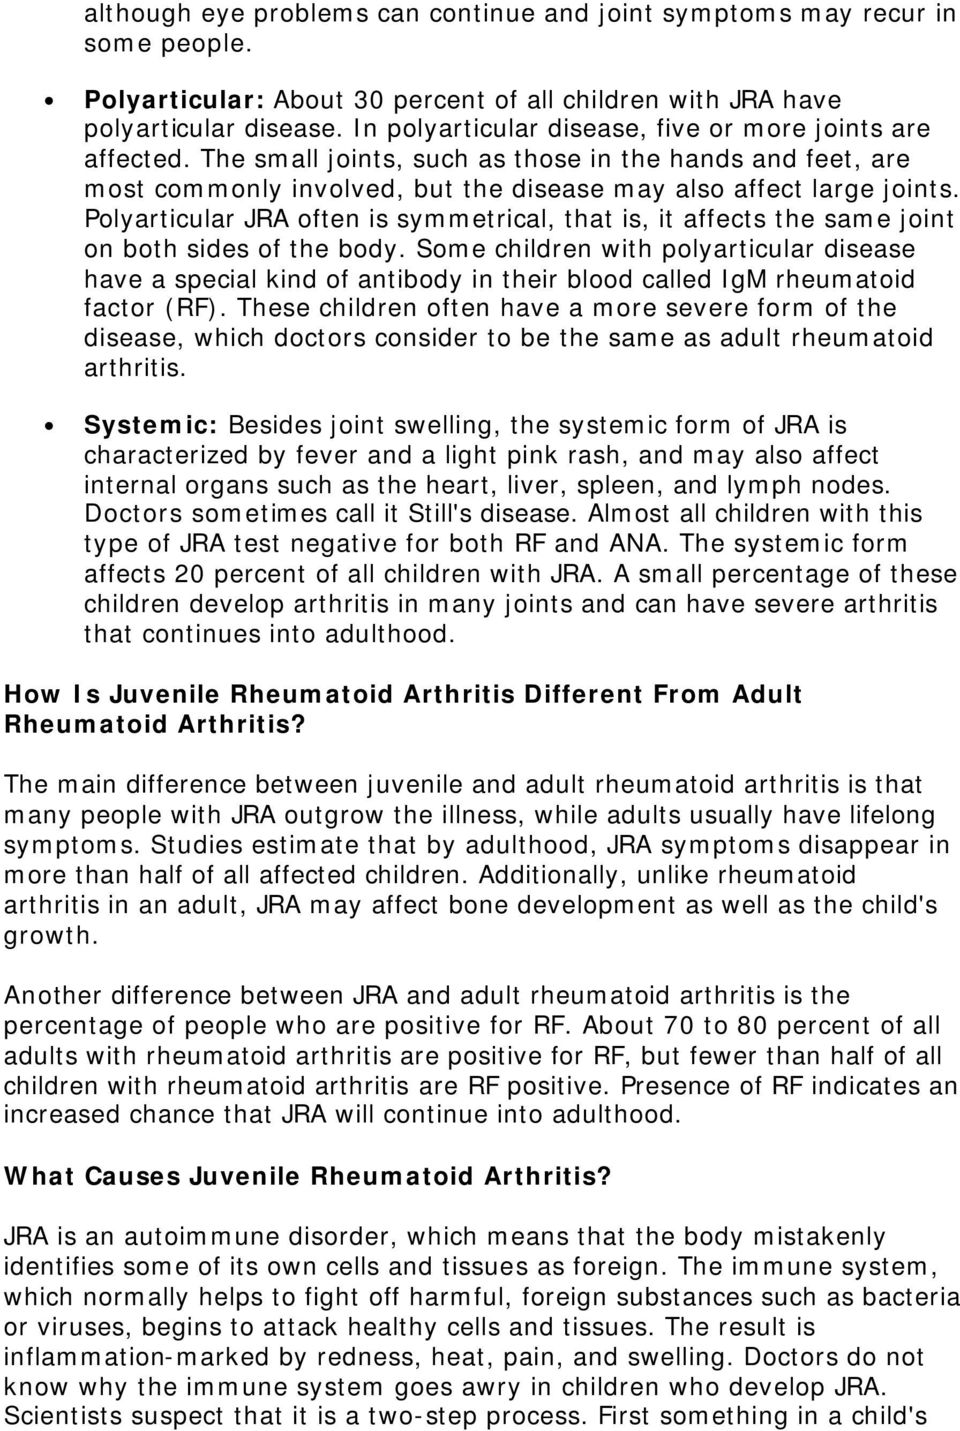 Polyarticular JRA often is symmetrical, that is, it affects the same joint on both sides of the body.